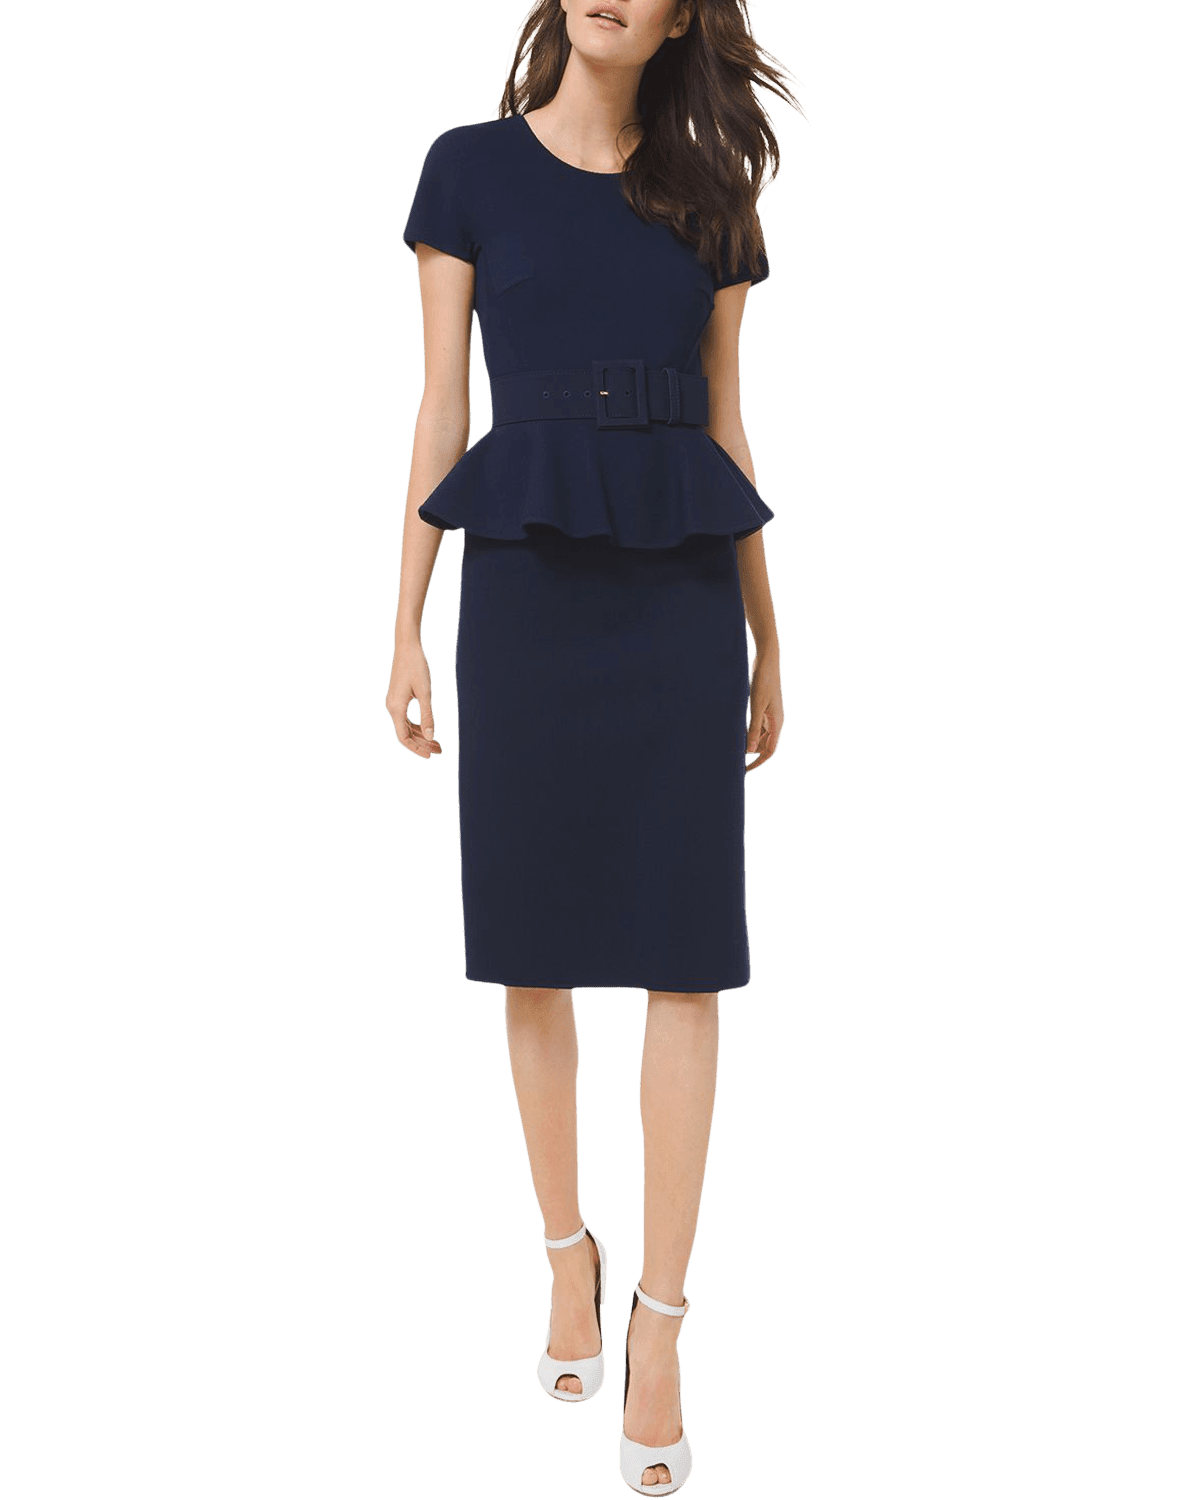 MICHAEL KORS COLLECTION Double-Faced Peplum Sheath Dress